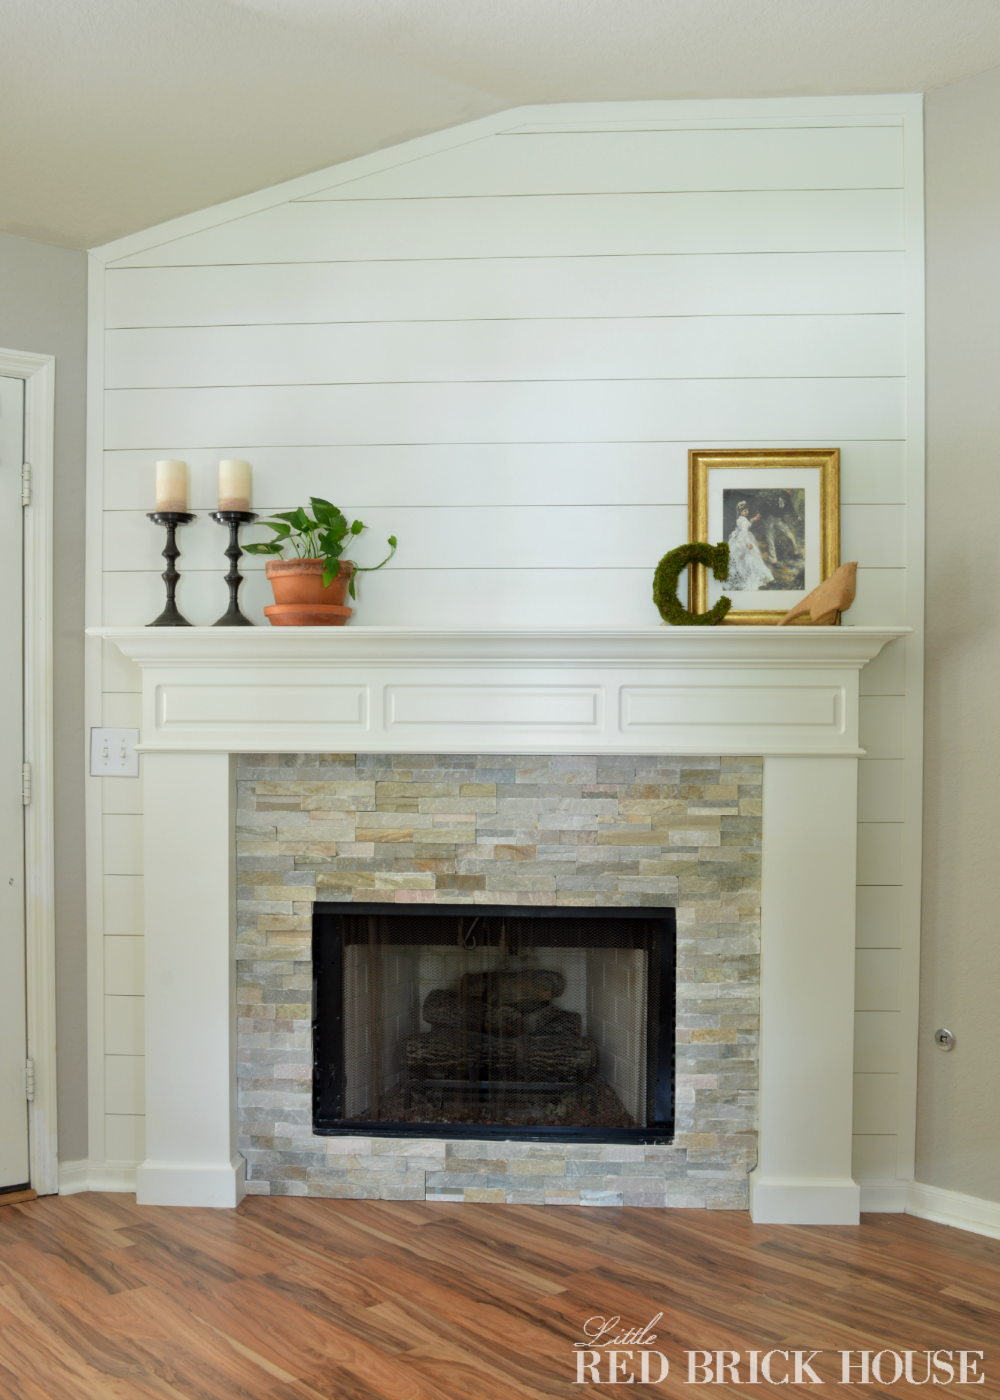 Fireplace makeover stonework little red brick house - Floor to ceiling brick fireplace makeover ...